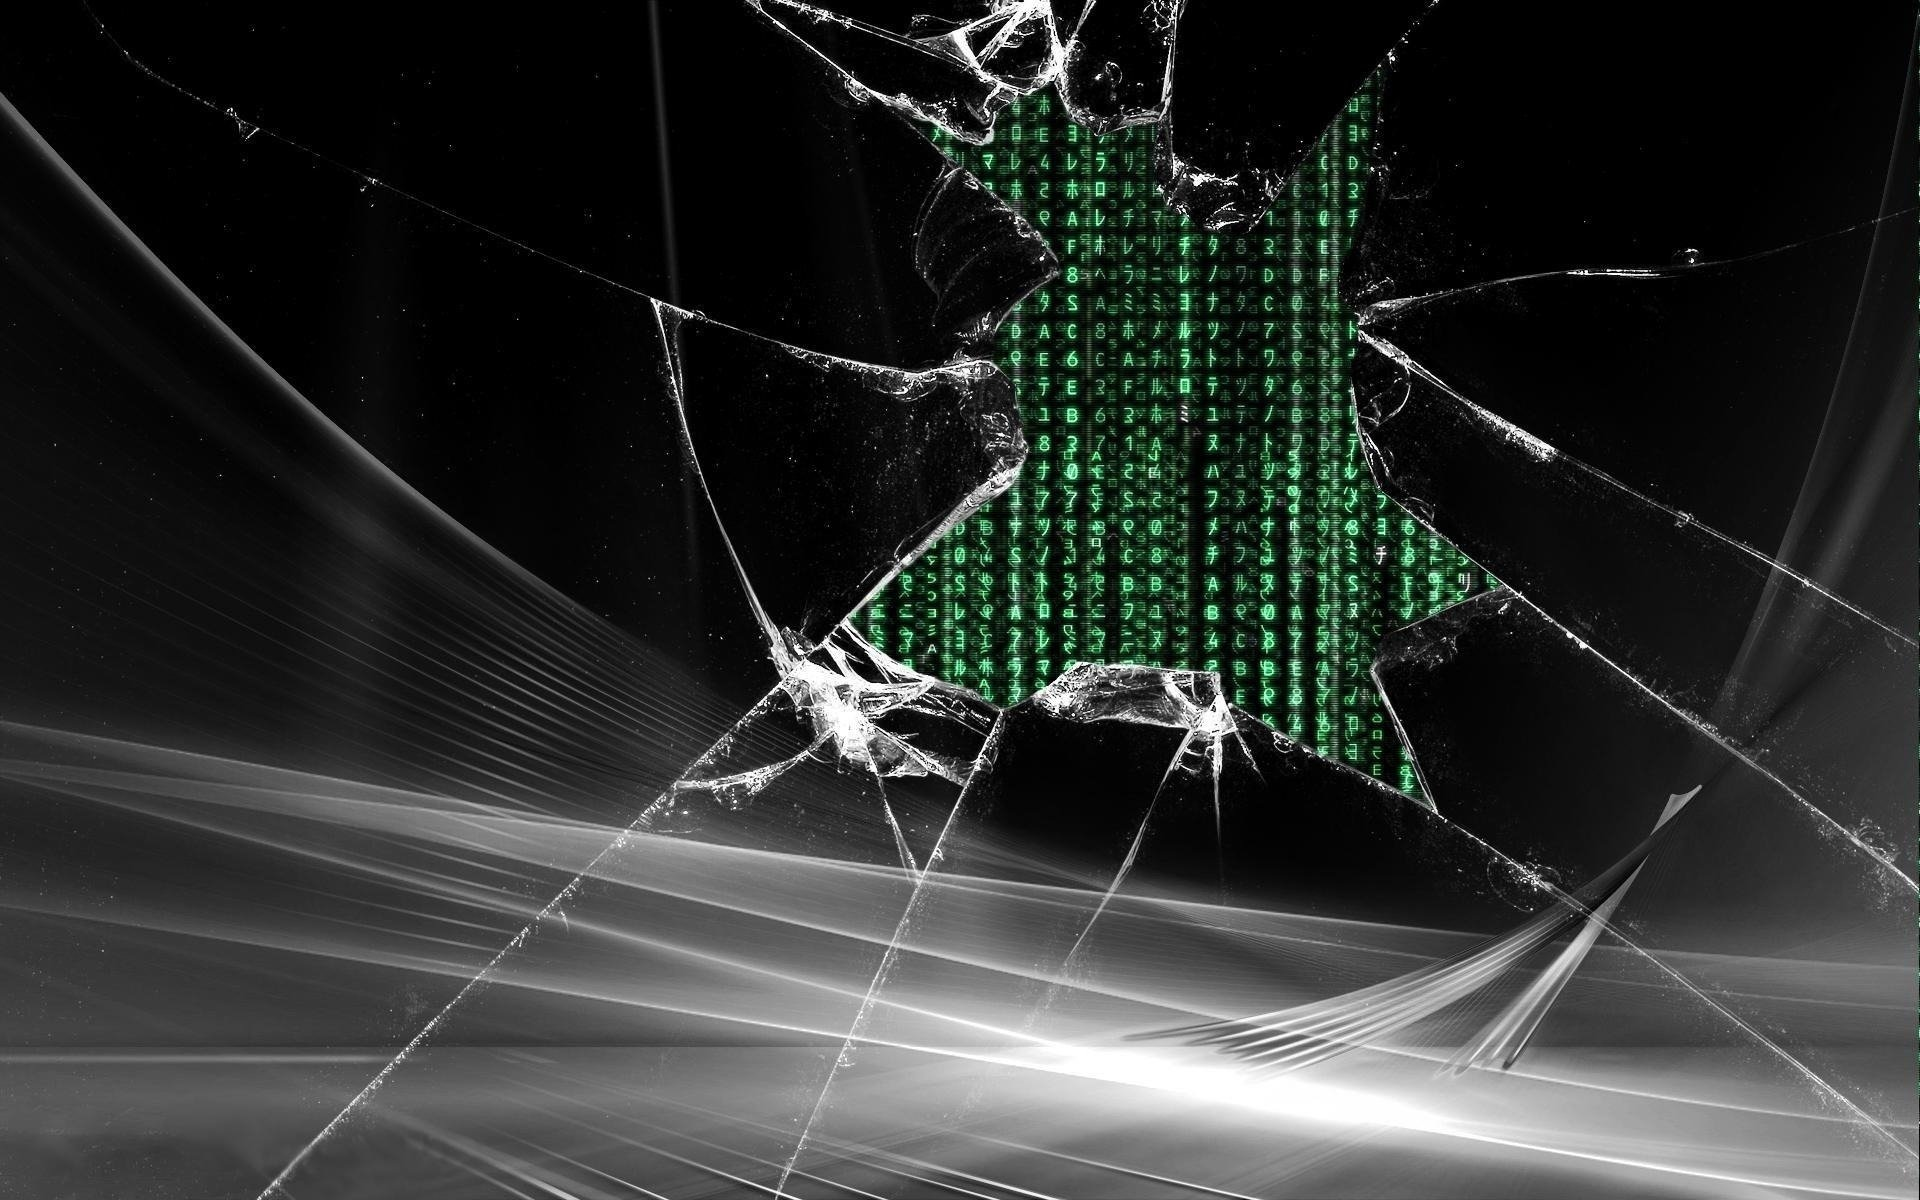 Explore More Wallpapers In The Cracked Screen Sub Category